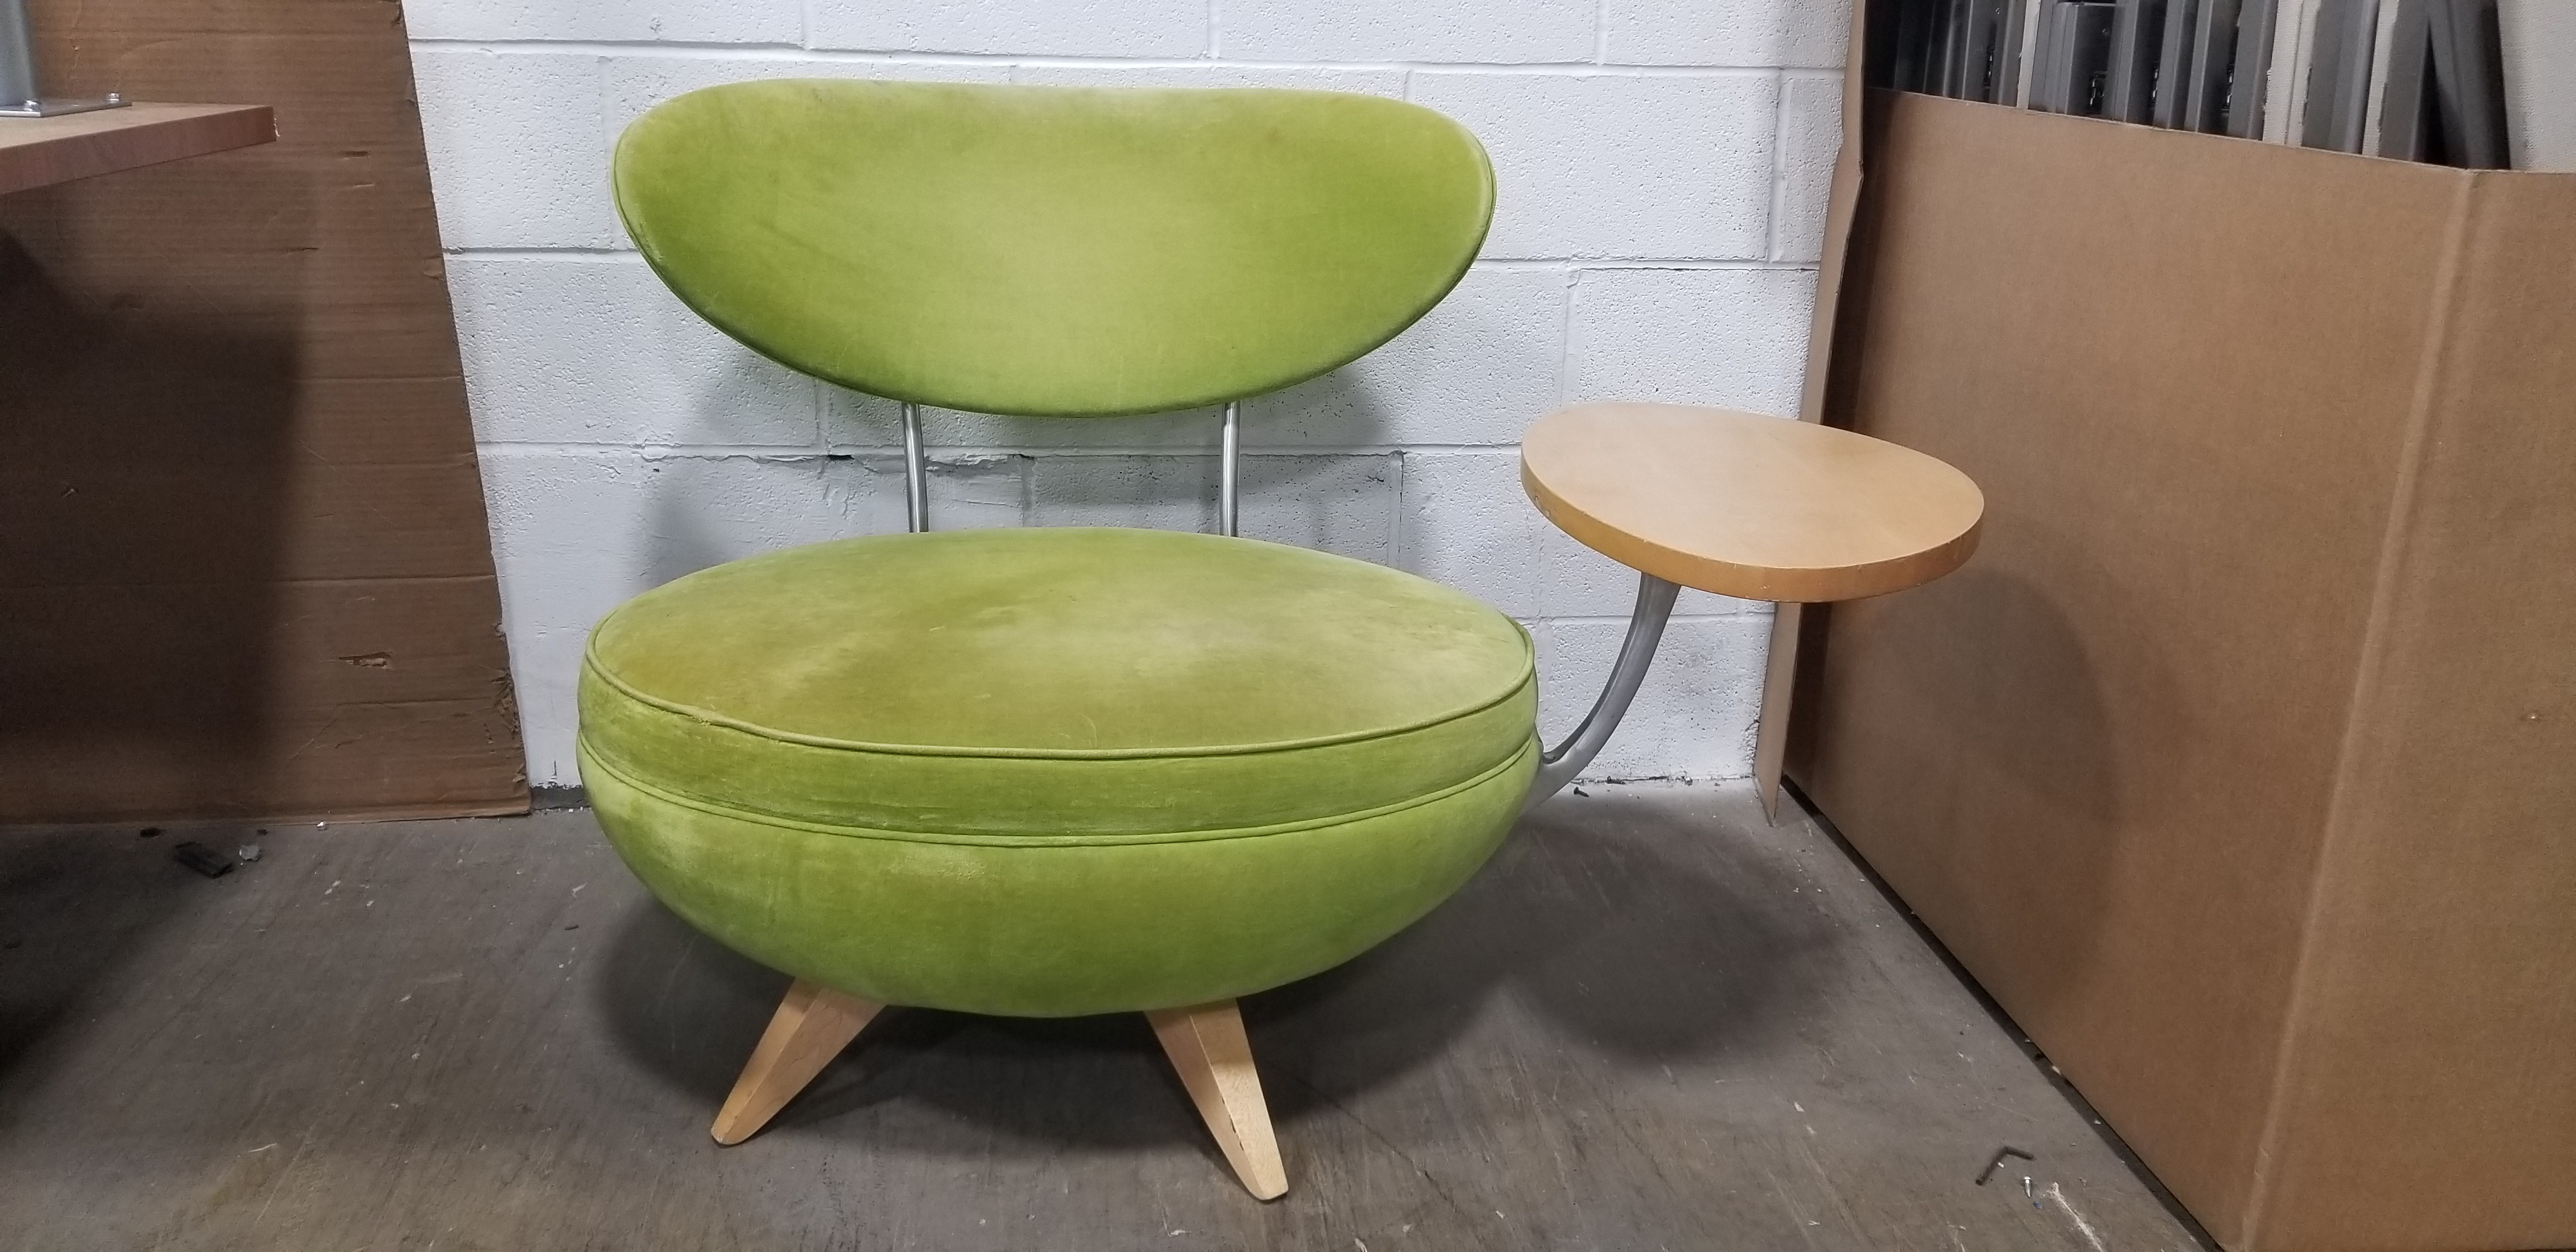 Admirable Green Lounge Chair W Tablet Arm Ibusinesslaw Wood Chair Design Ideas Ibusinesslaworg